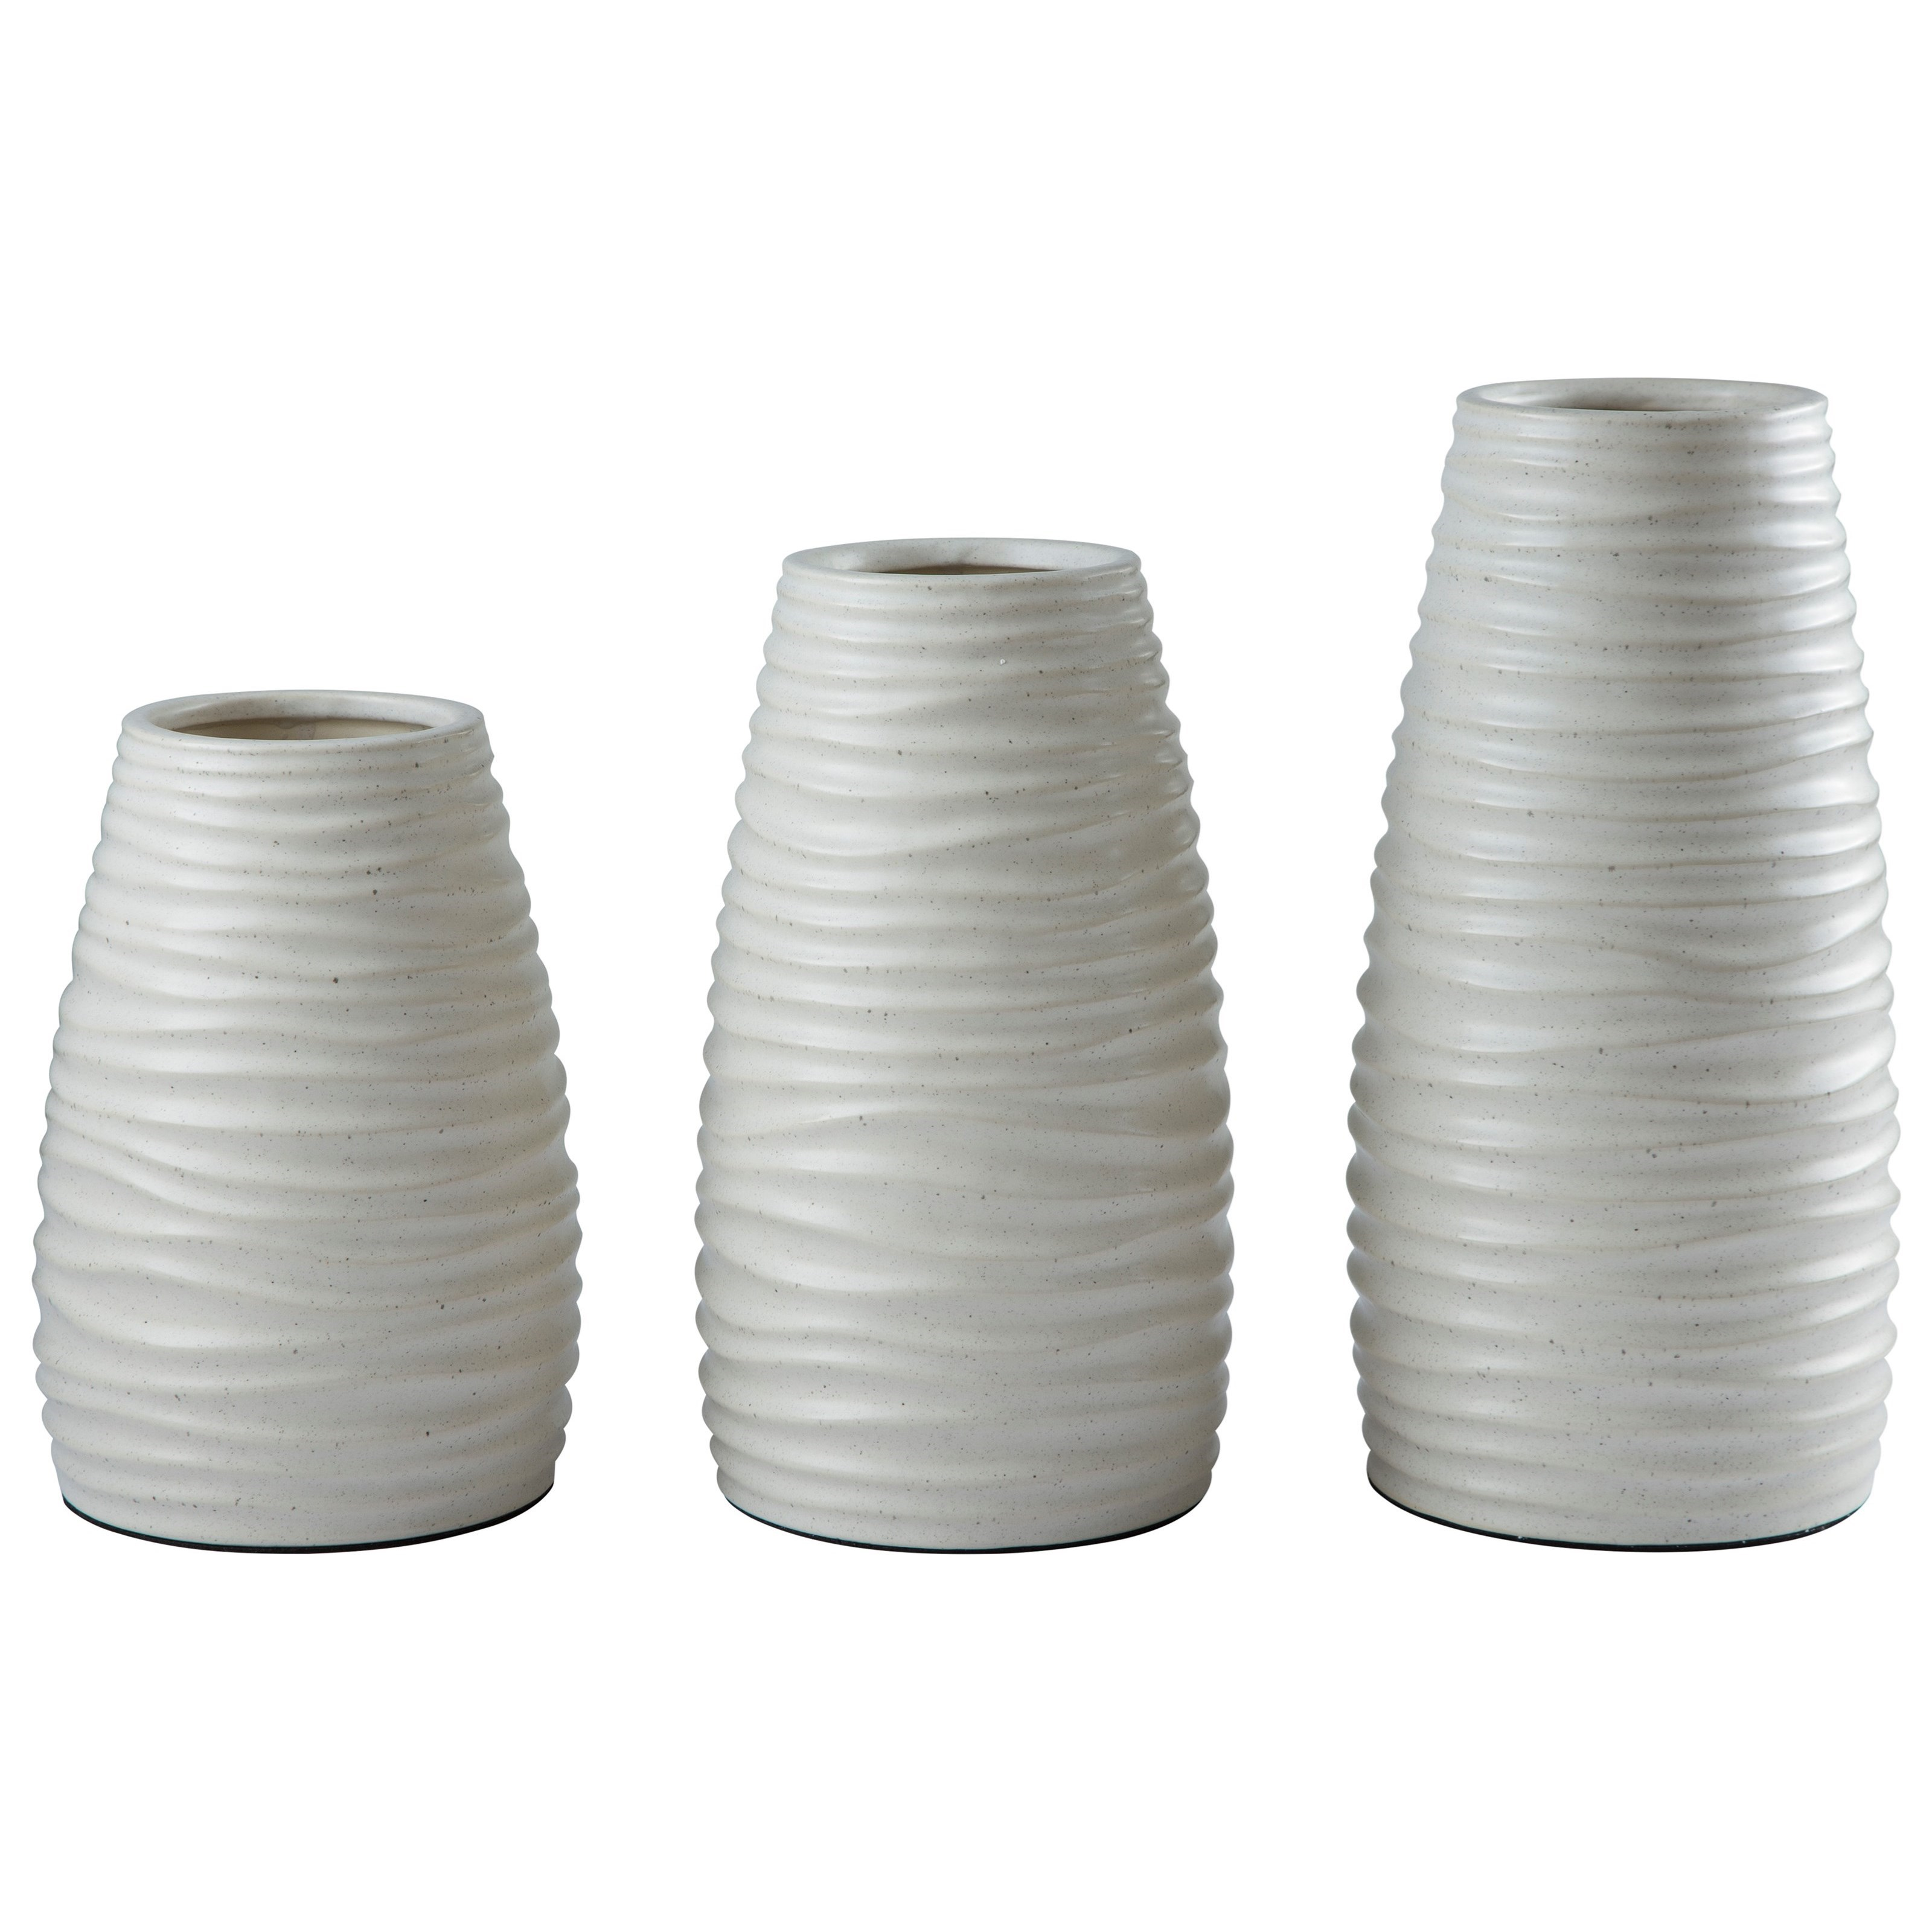 Signature Design by Ashley Furniture Accents Kaemon White Vase (Set of 3) - Item Number: A2000194V